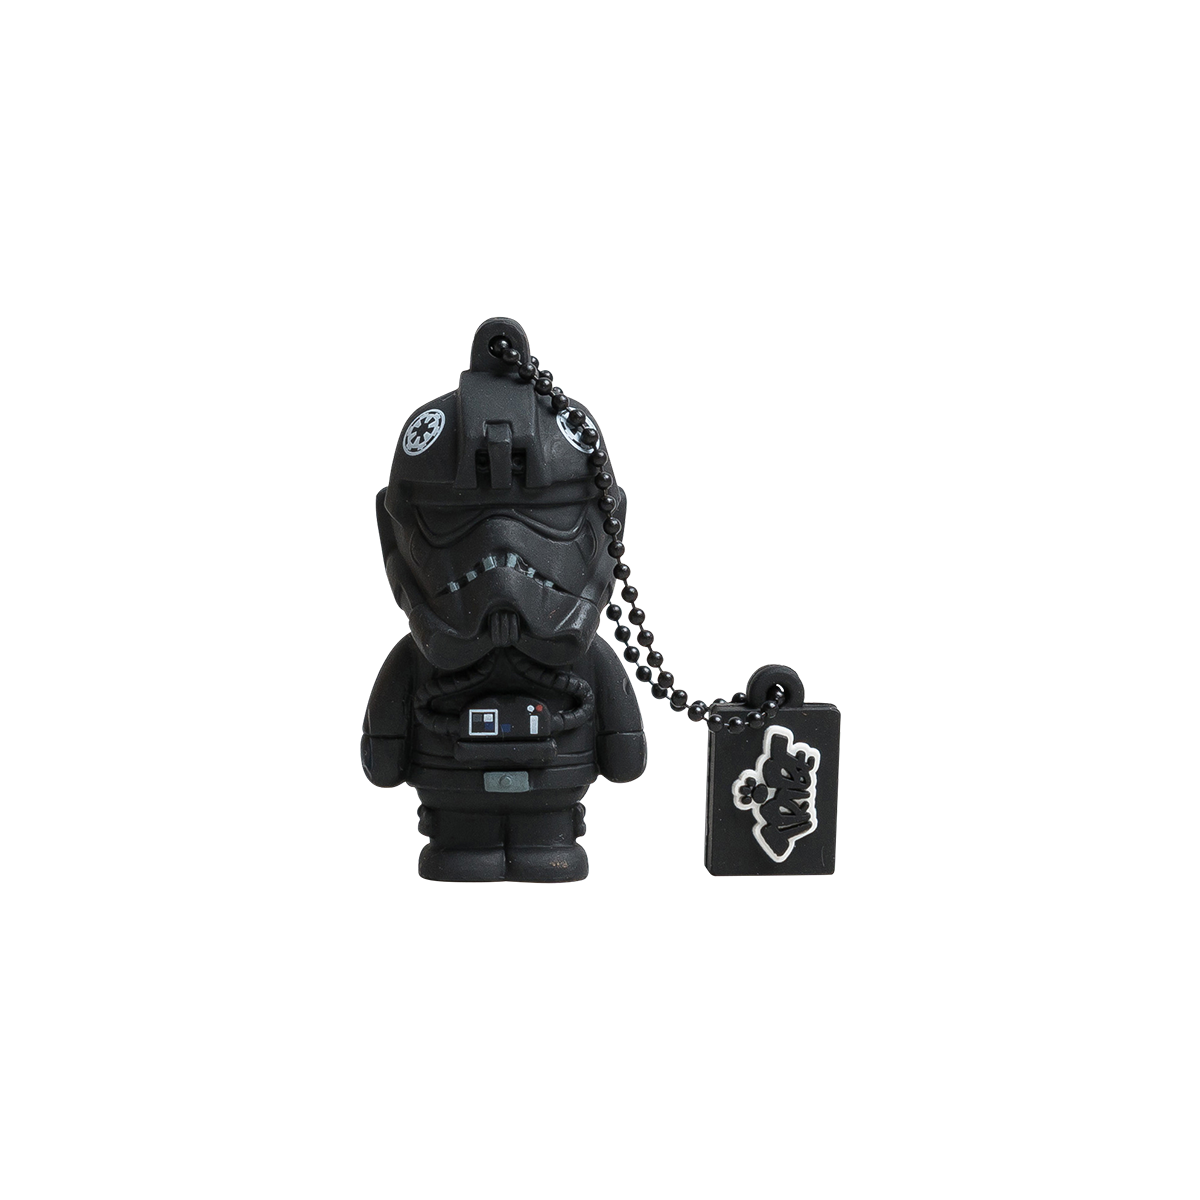 16gb star wars tie fighter pilot usb flash drive. Black Bedroom Furniture Sets. Home Design Ideas